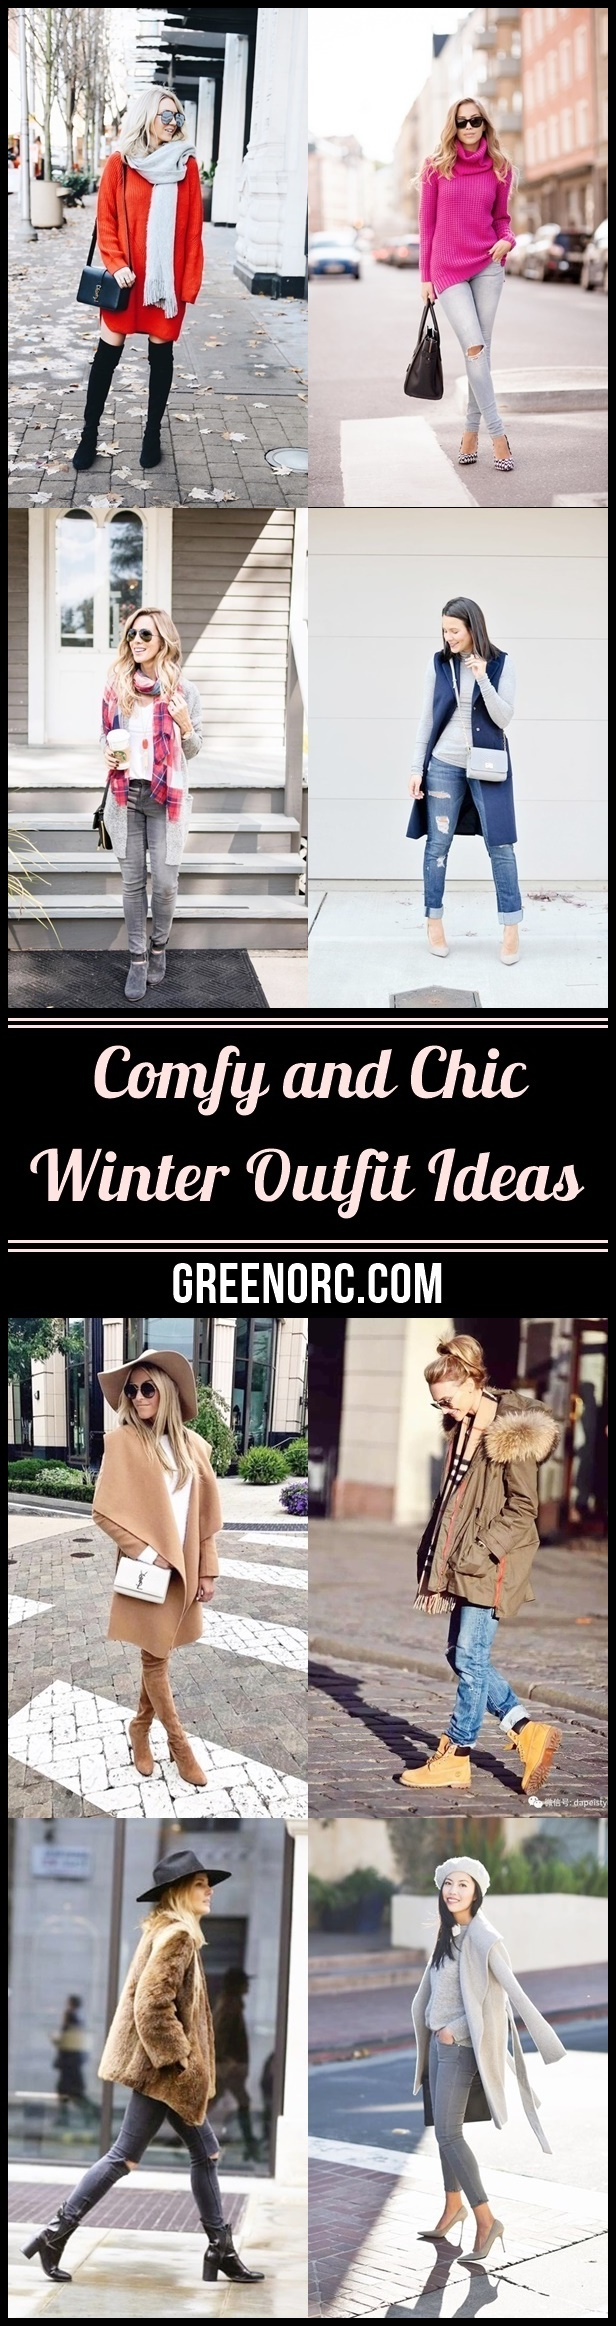 Comfy and Chic Winter Outfit Ideas